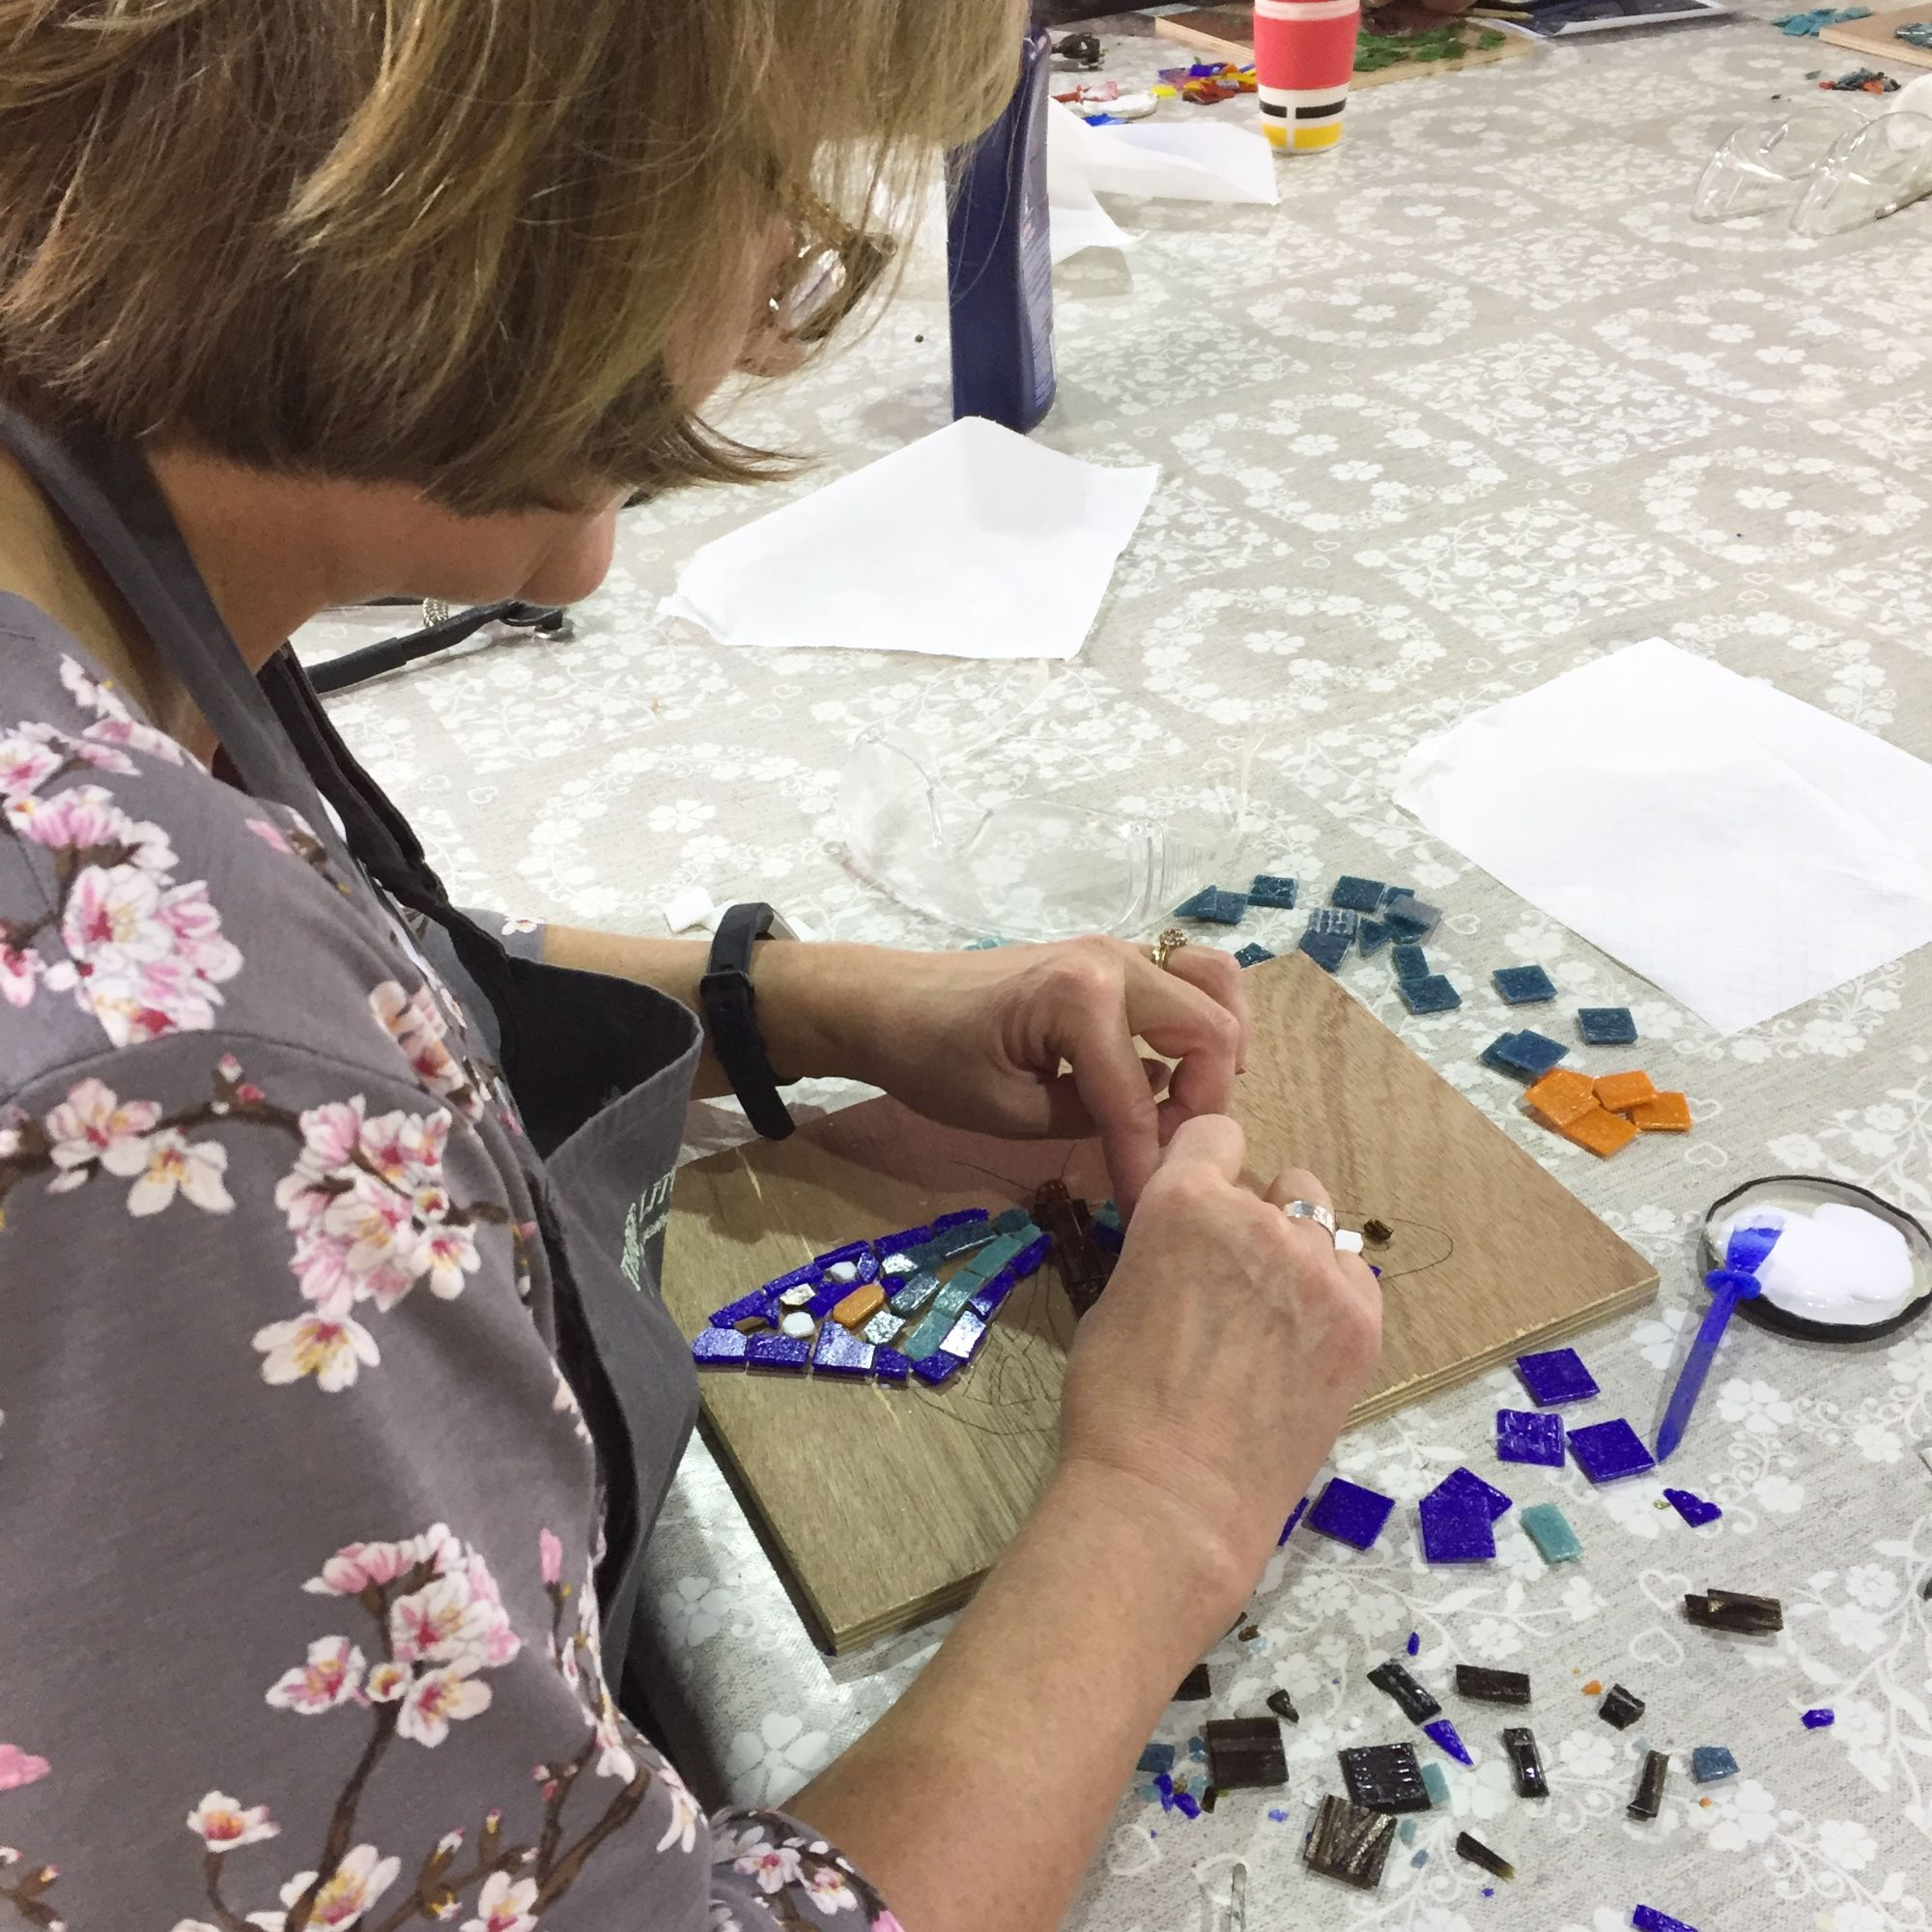 Mosaic Workshop - Gluing